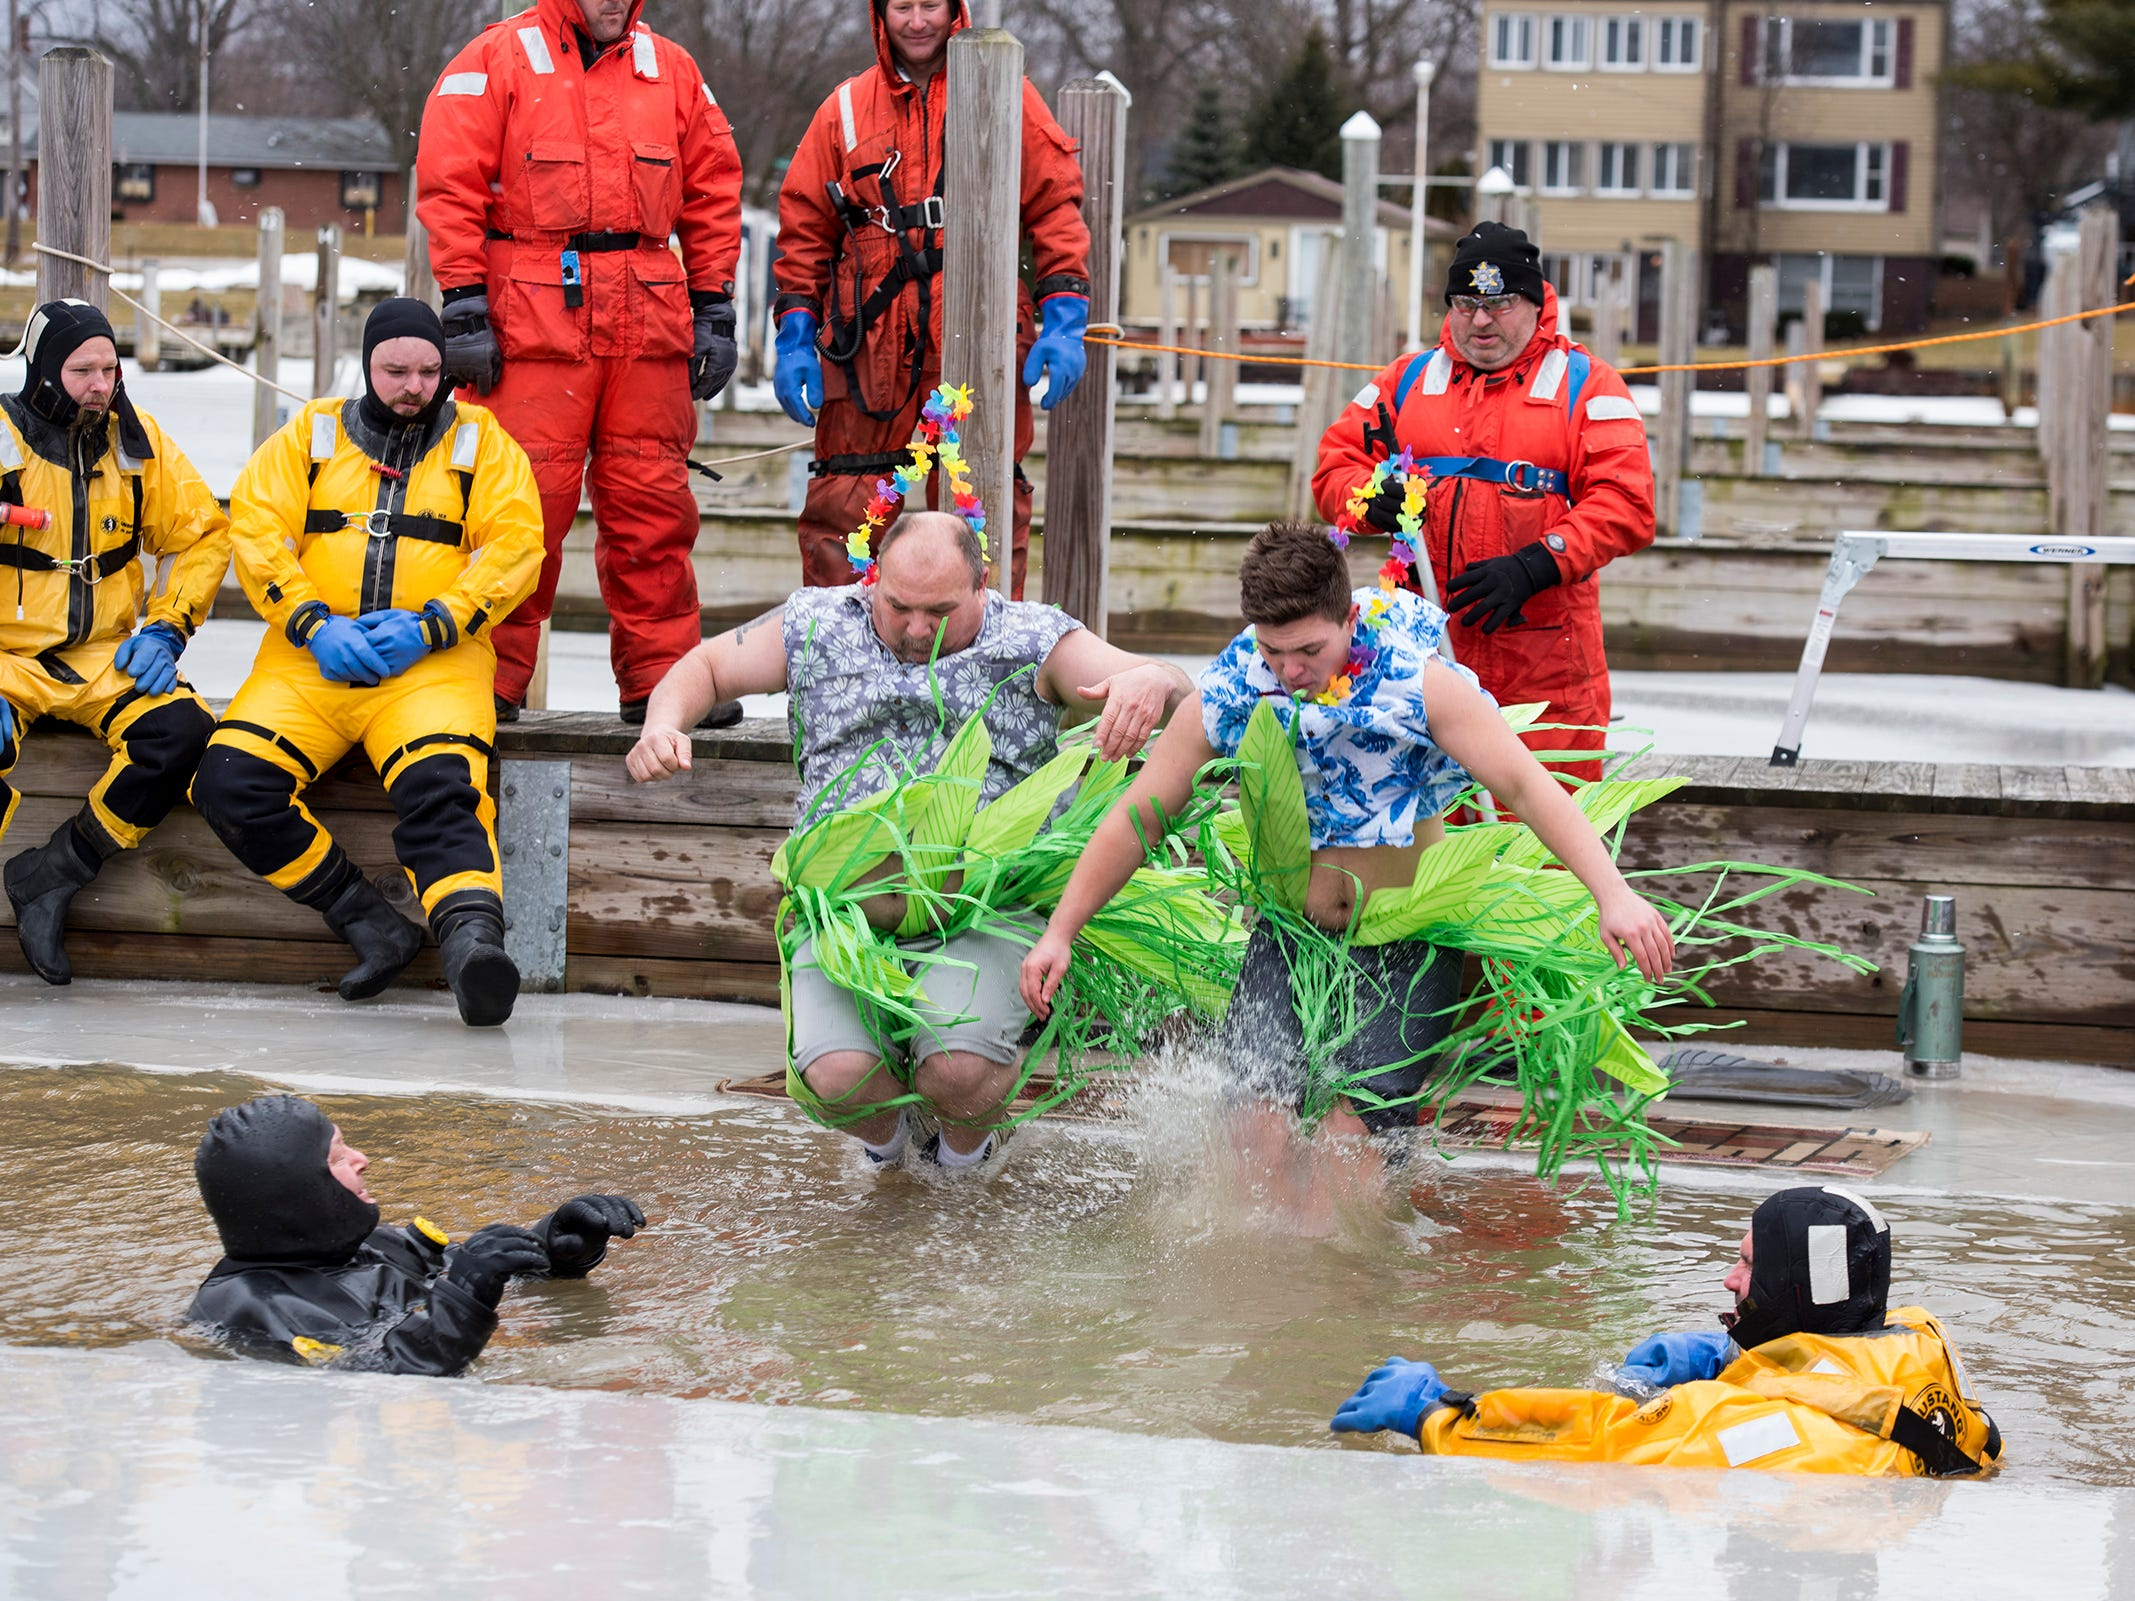 Participants plunge through a hole cut in the ice in the St. Clair Boat Harbor Sunday, Feb. 24, 2019 for the annual St. Clair Polar Plunge.